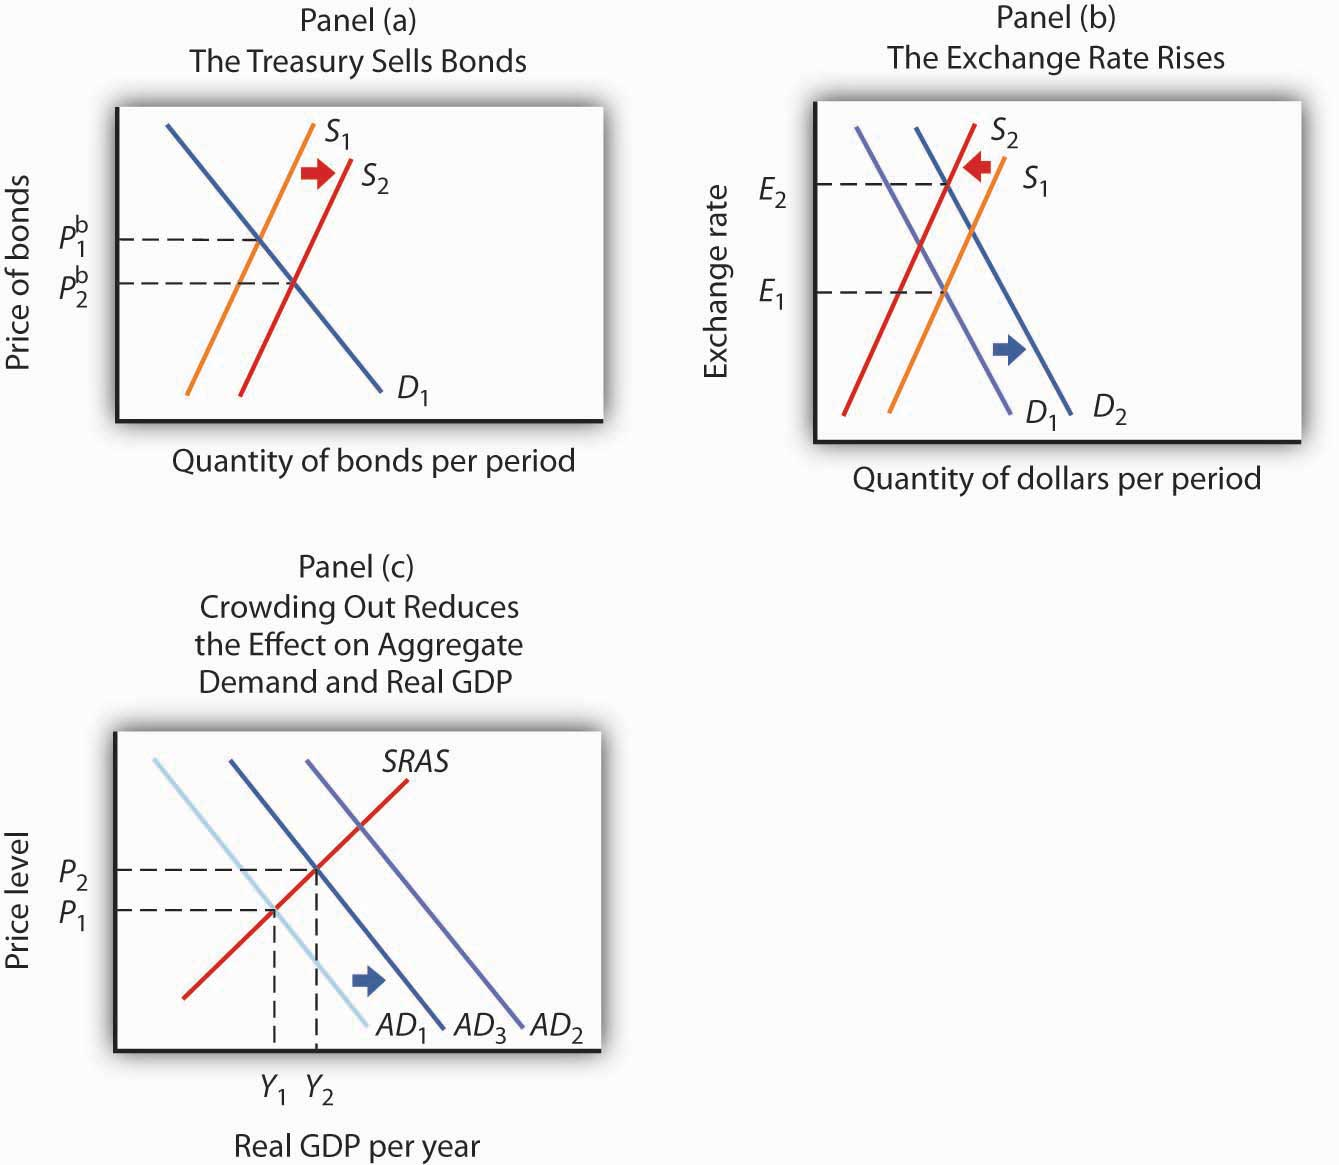 An Expansionary Fiscal Policy and Crowding Out